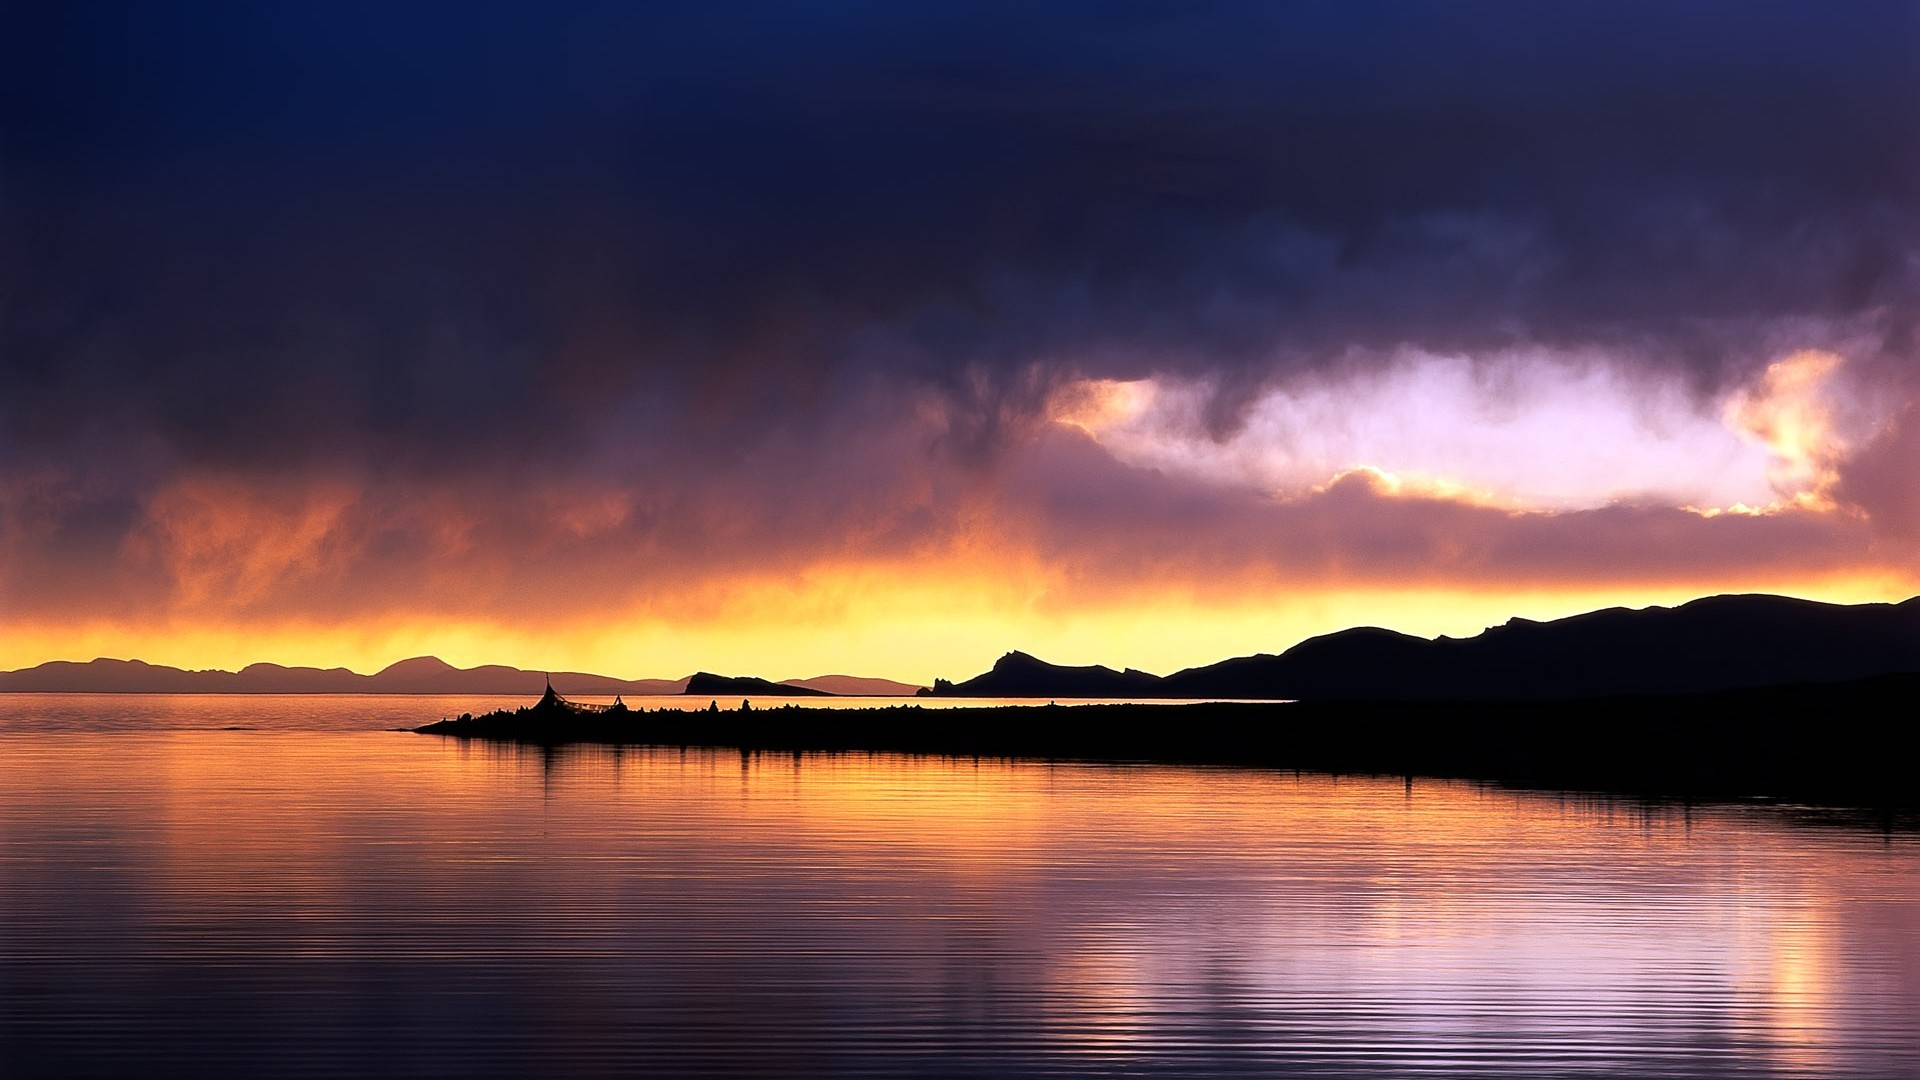 Res: 1920x1080, Exquisite Chinese landscape wallpaper #15 - .